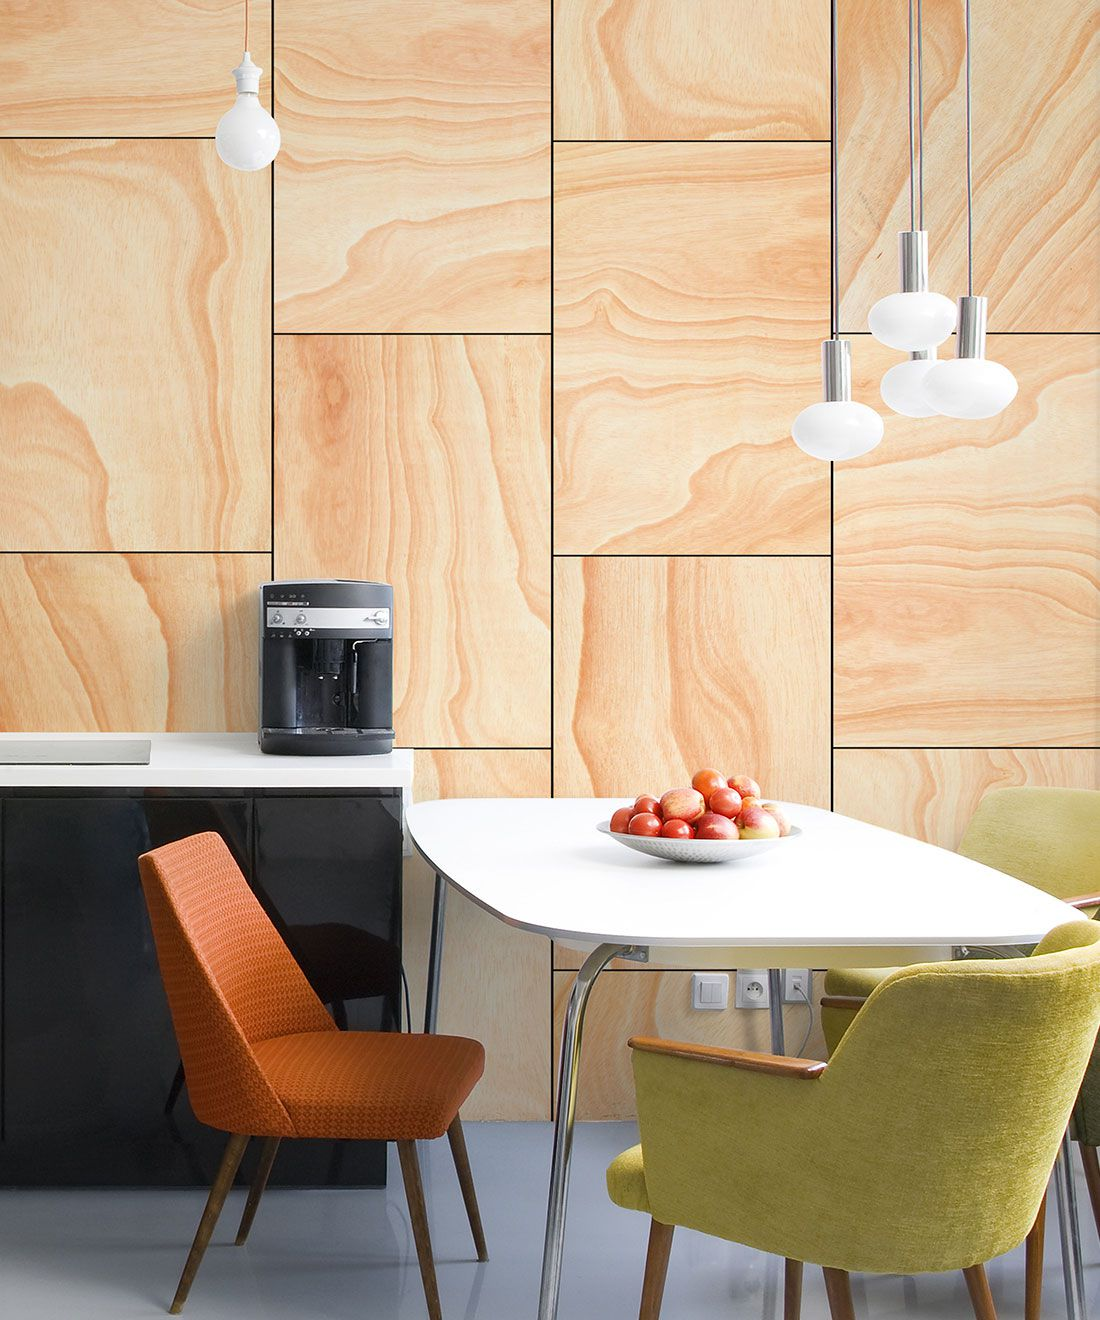 Ply Wood Wallpaper • Light Brown Wallpaper •Wood Grain Wallpaper with a white table surrounded by a green chair and an orange chair